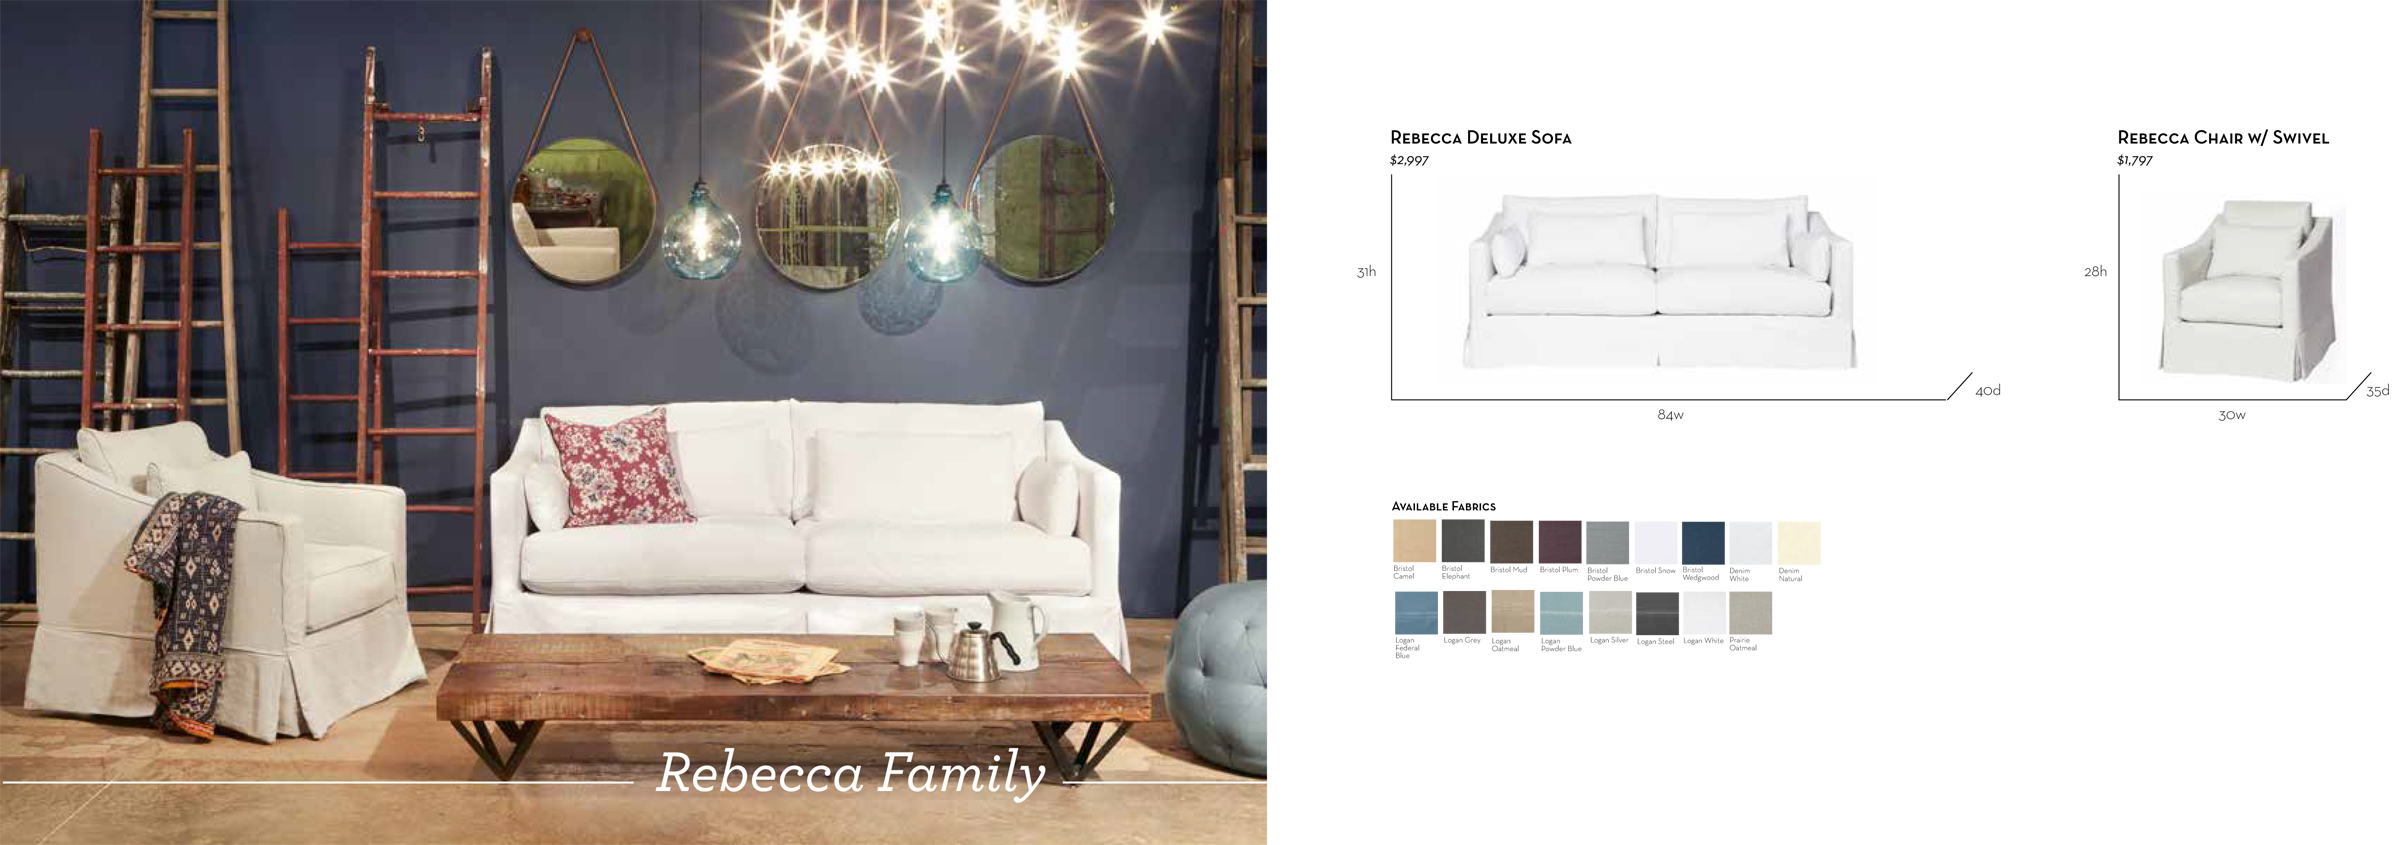 Rebecca_Collection_Cisco_Brothers.jpg